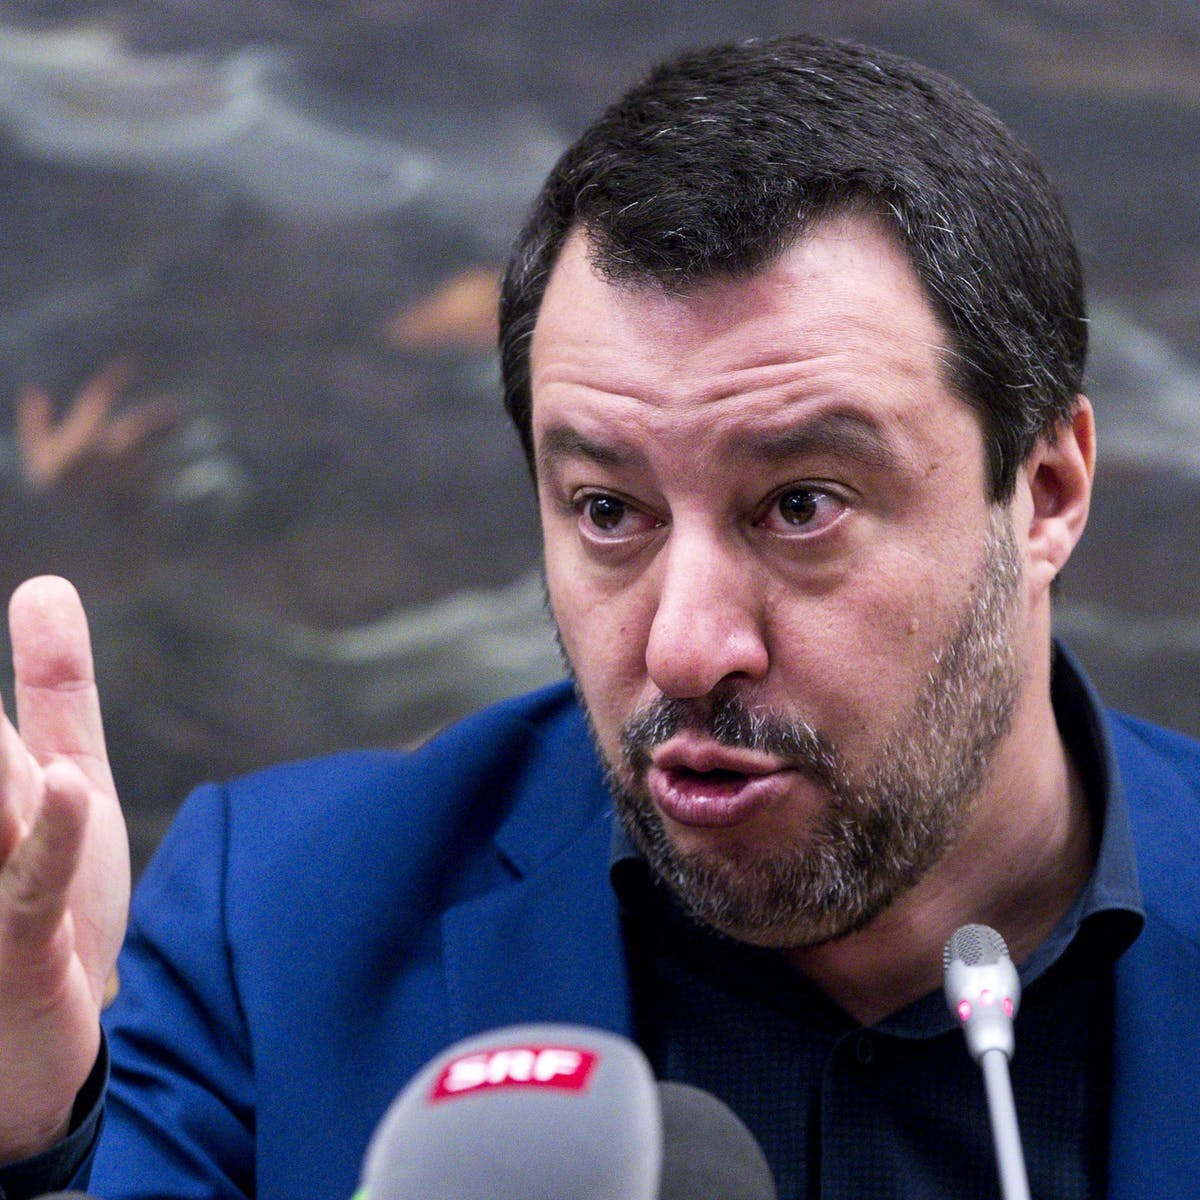 Matteo Salvini Just Avoided Facing A Kidnap Trial Thanks To An Online Vote